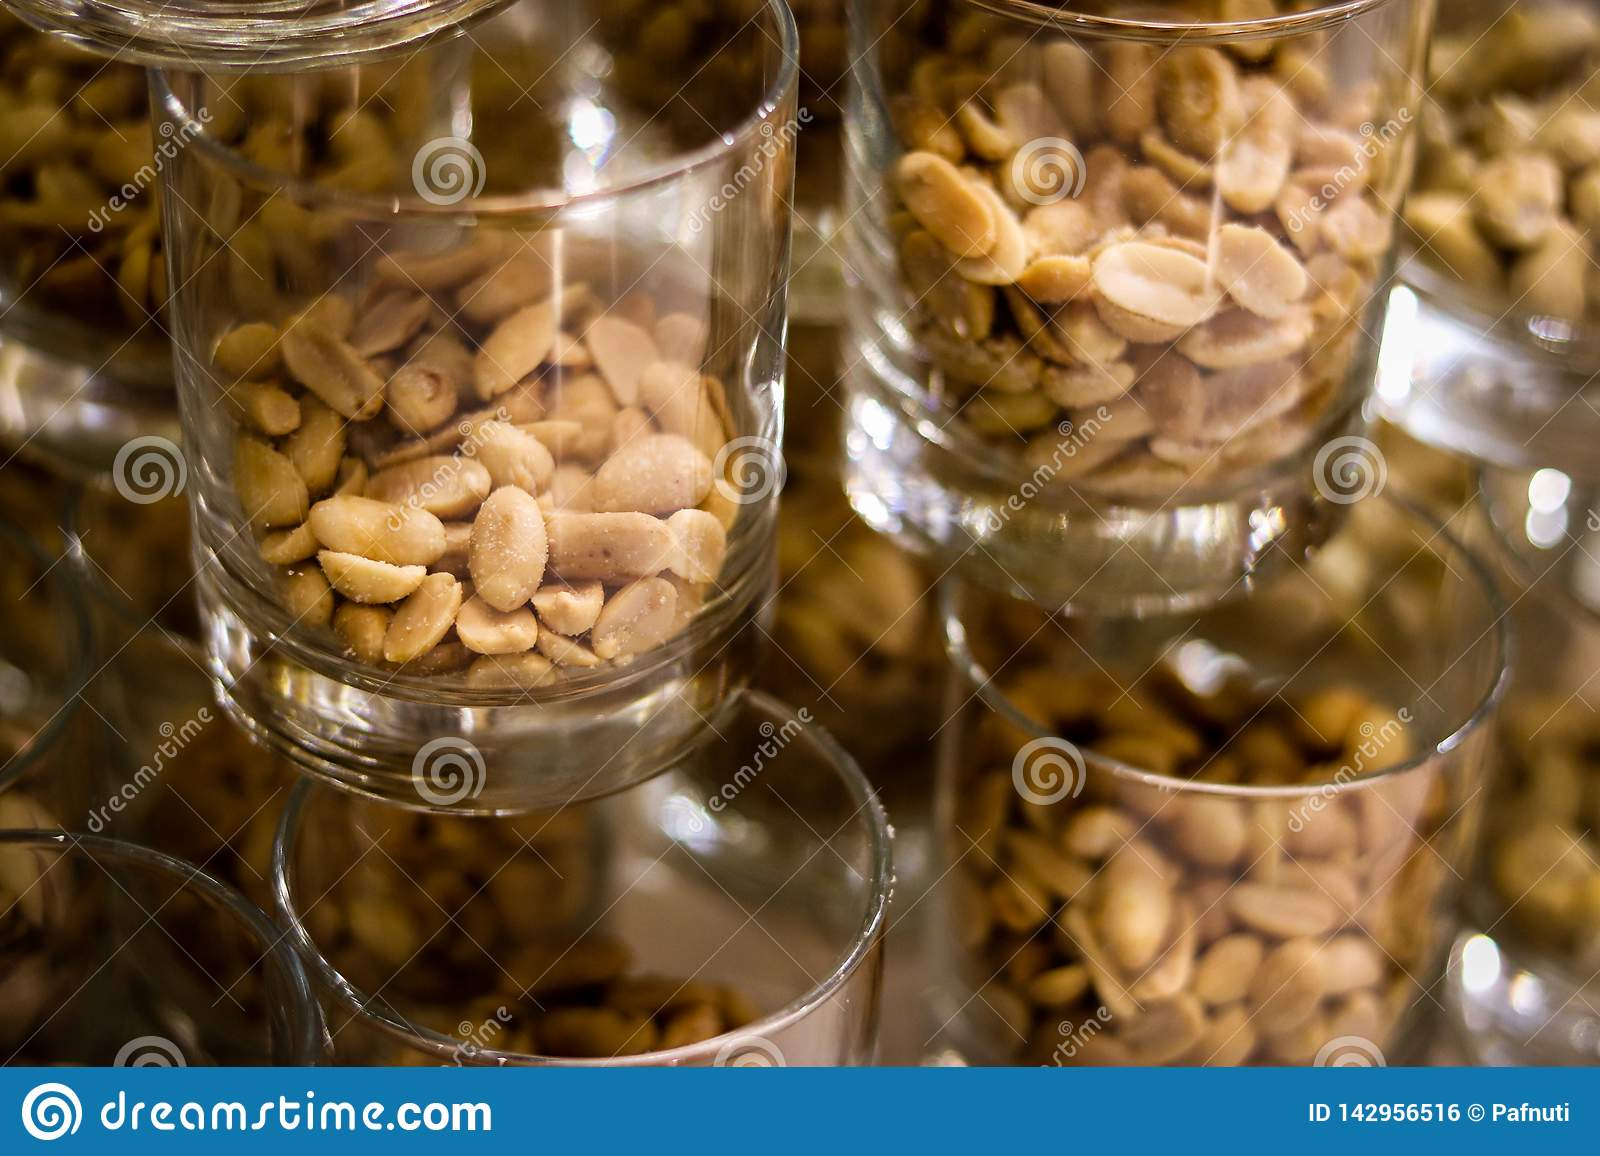 Peanuts in the glass on dark background